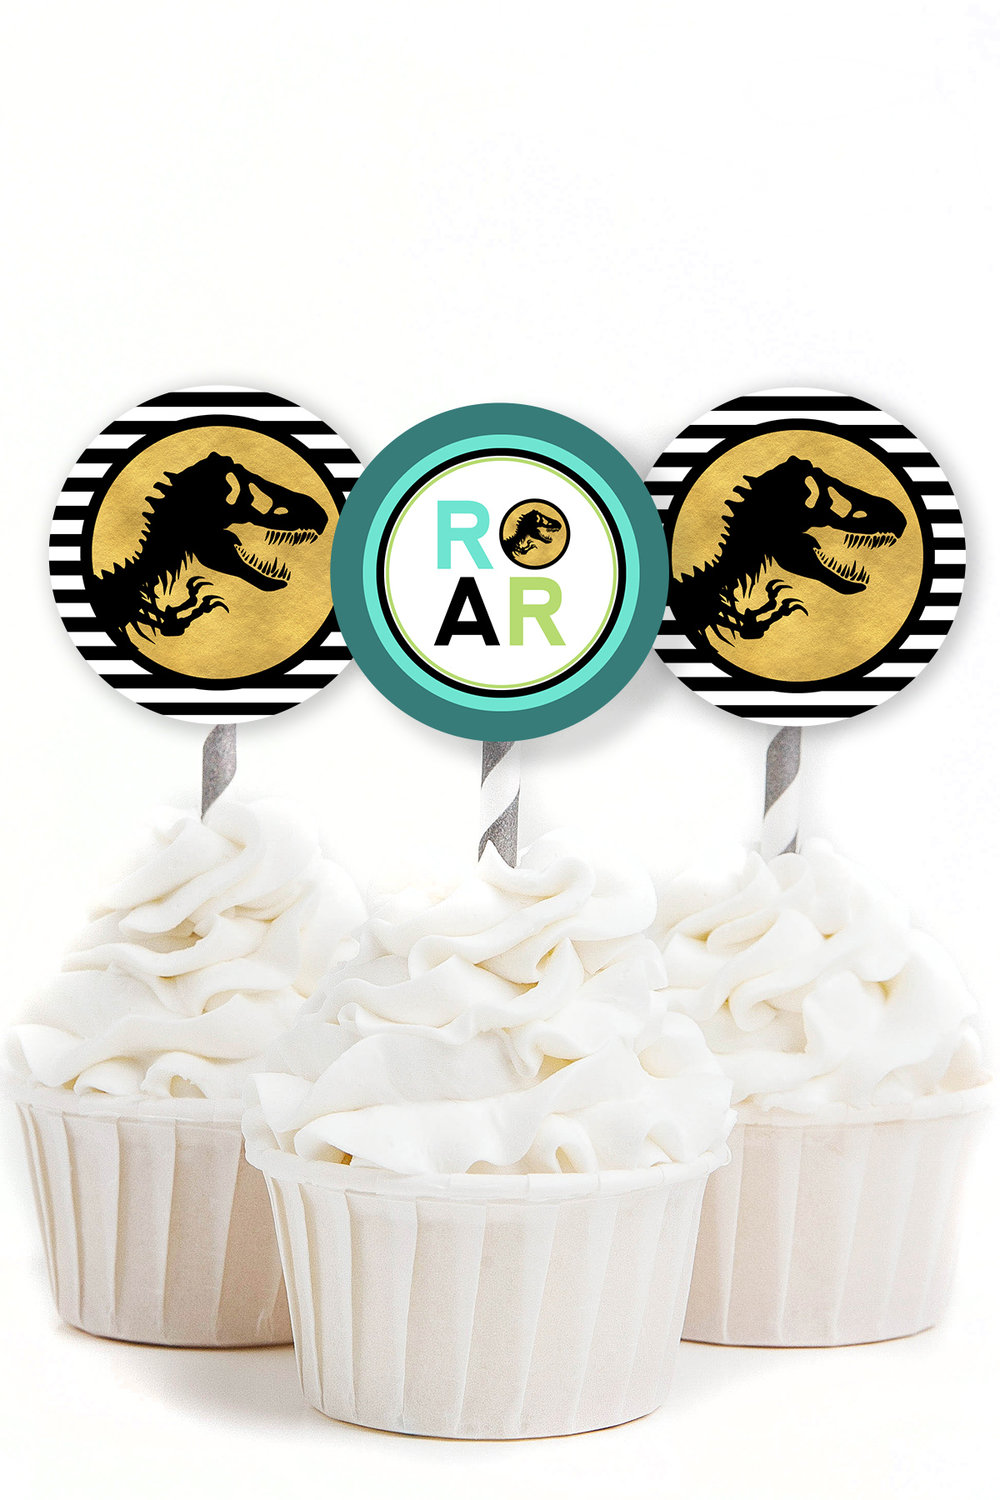 Free Printable Jurassic Park Inspired Cupcake Toppers By MKKM Designs